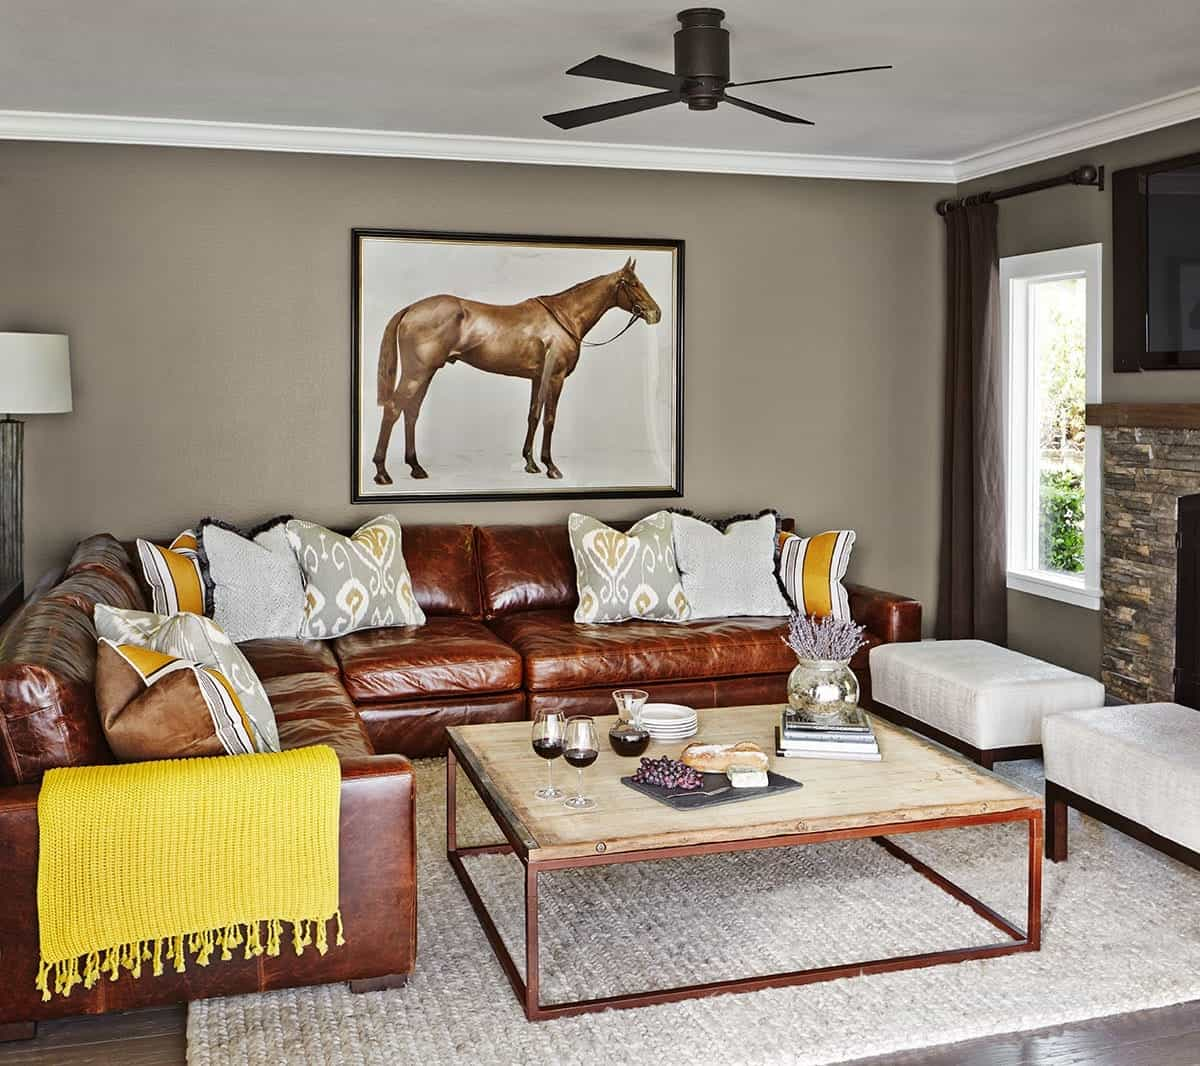 Eclectic Living Room With Rustic Coffee Table (Image 14 of 32)